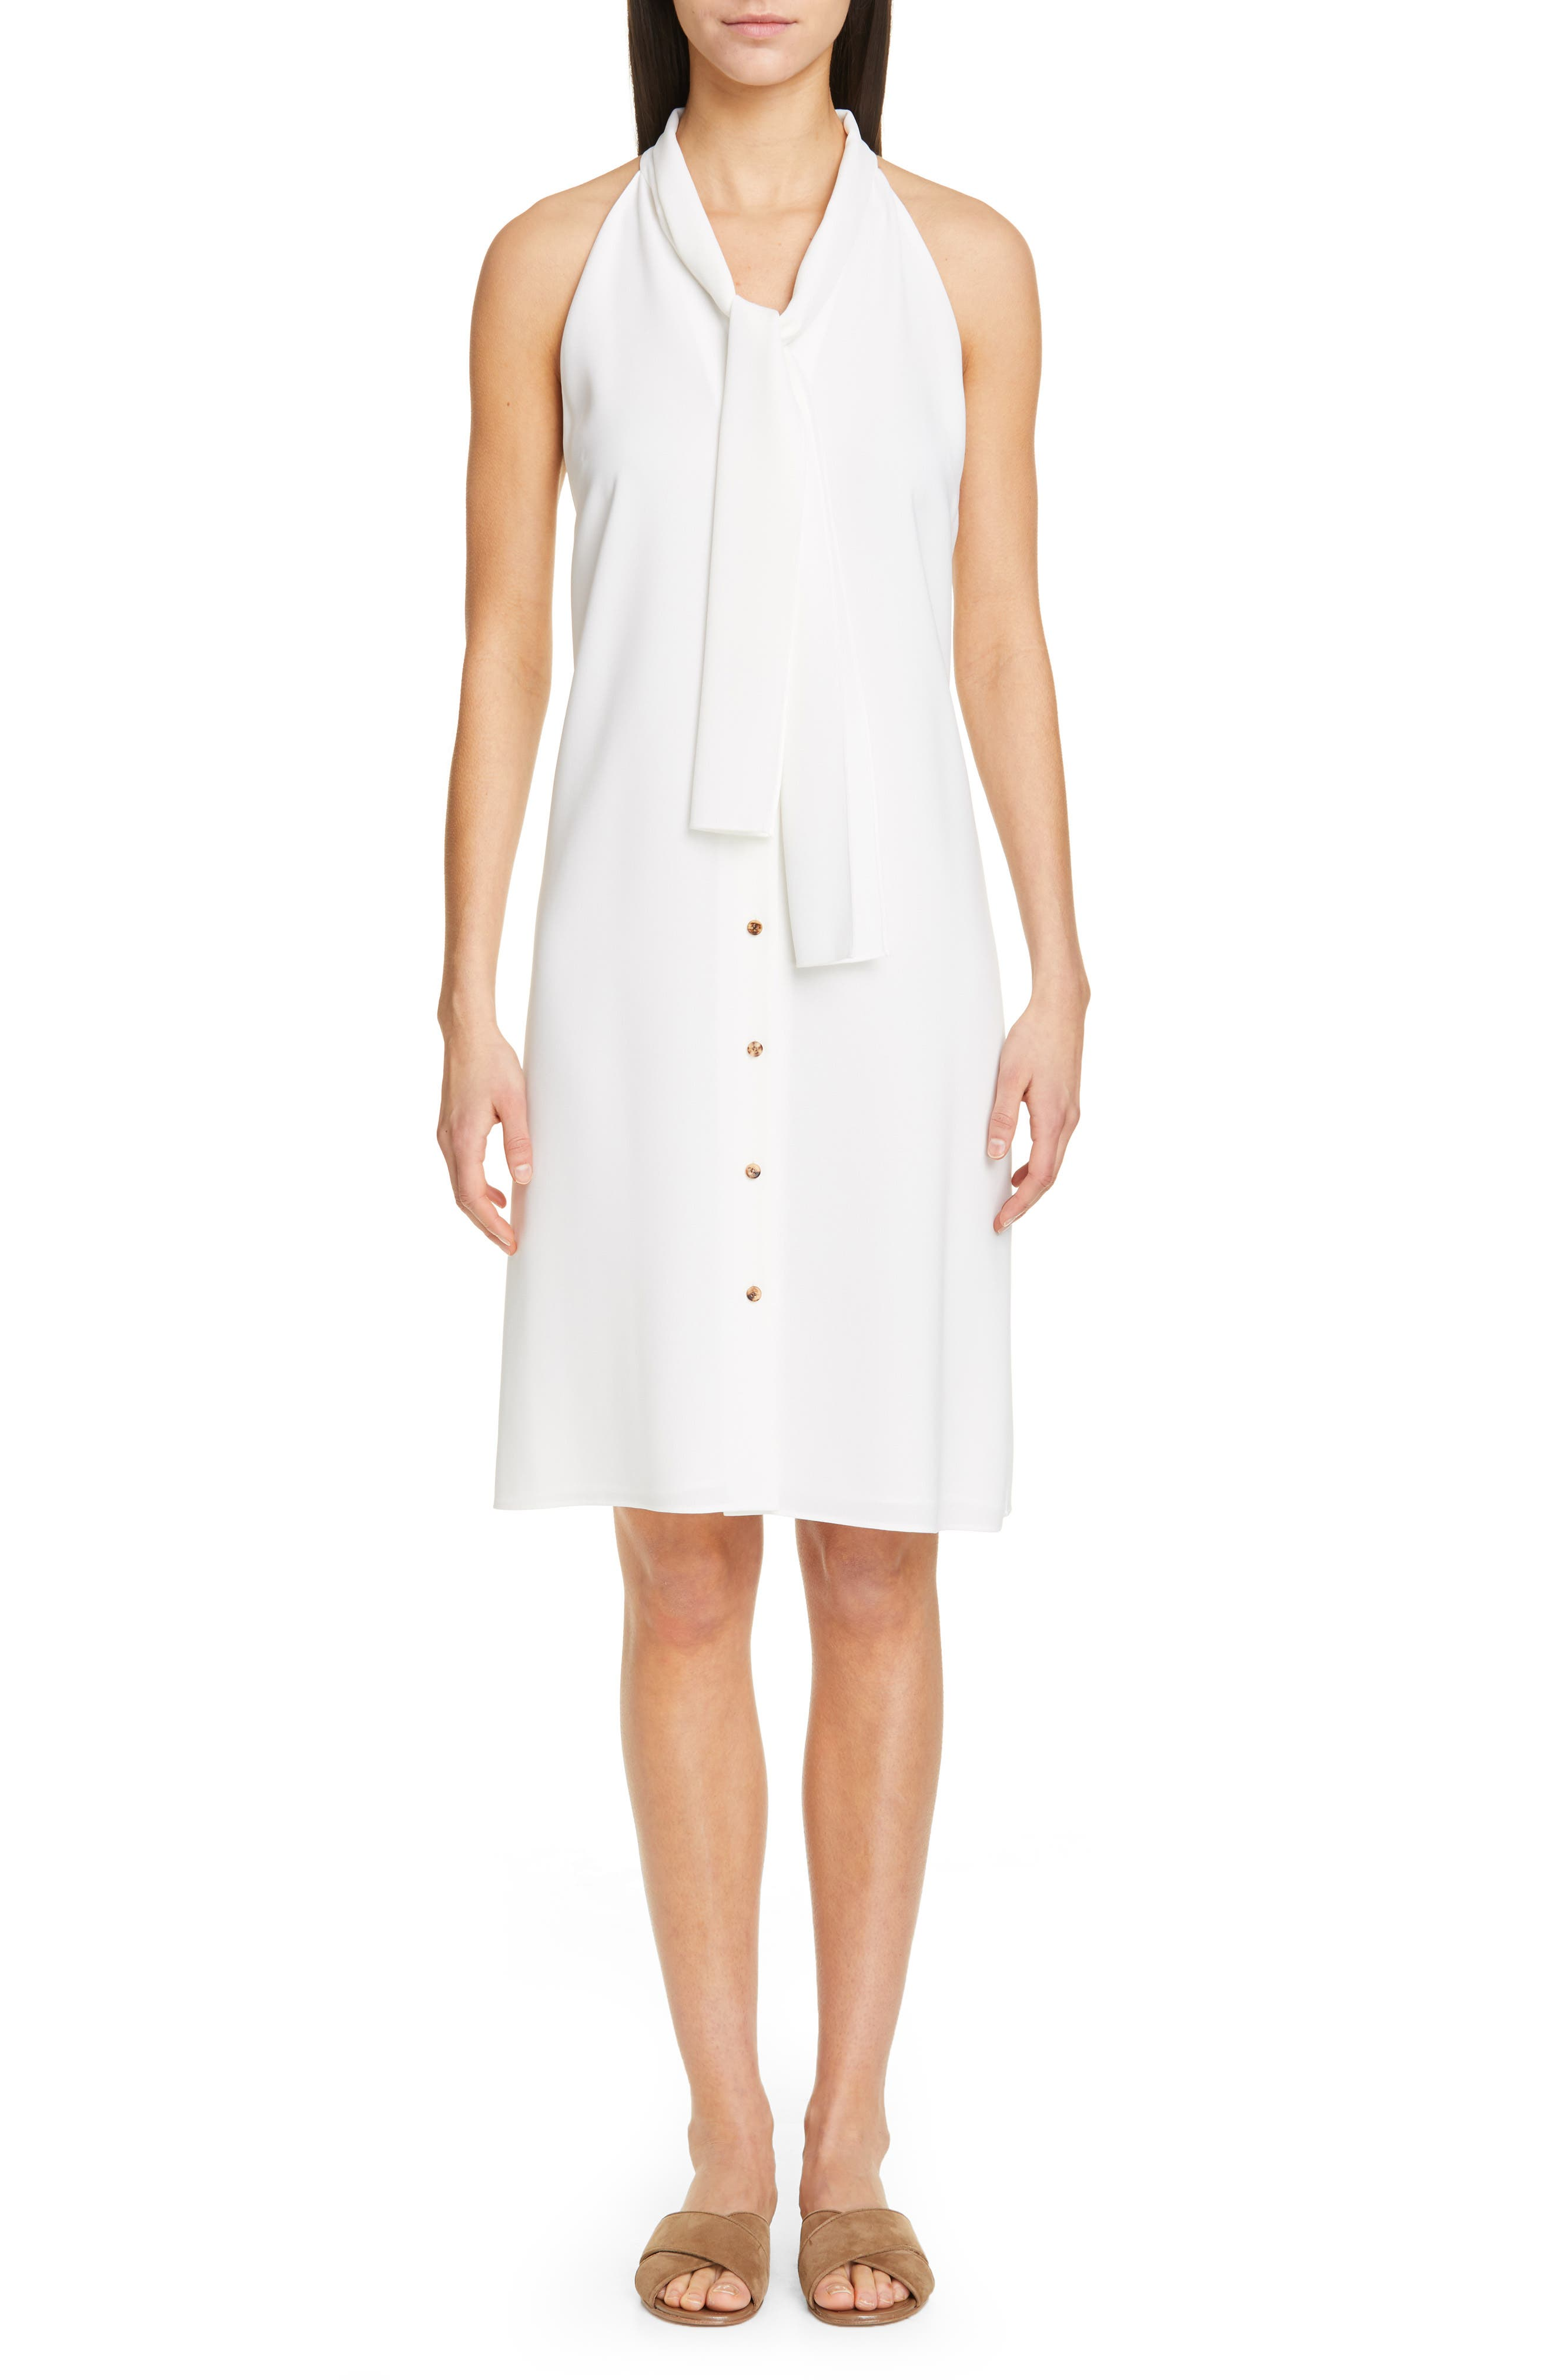 LAFAYETTE 148 NEW YORK Amore Finesse Crepe Dress, Main, color, CLOUD